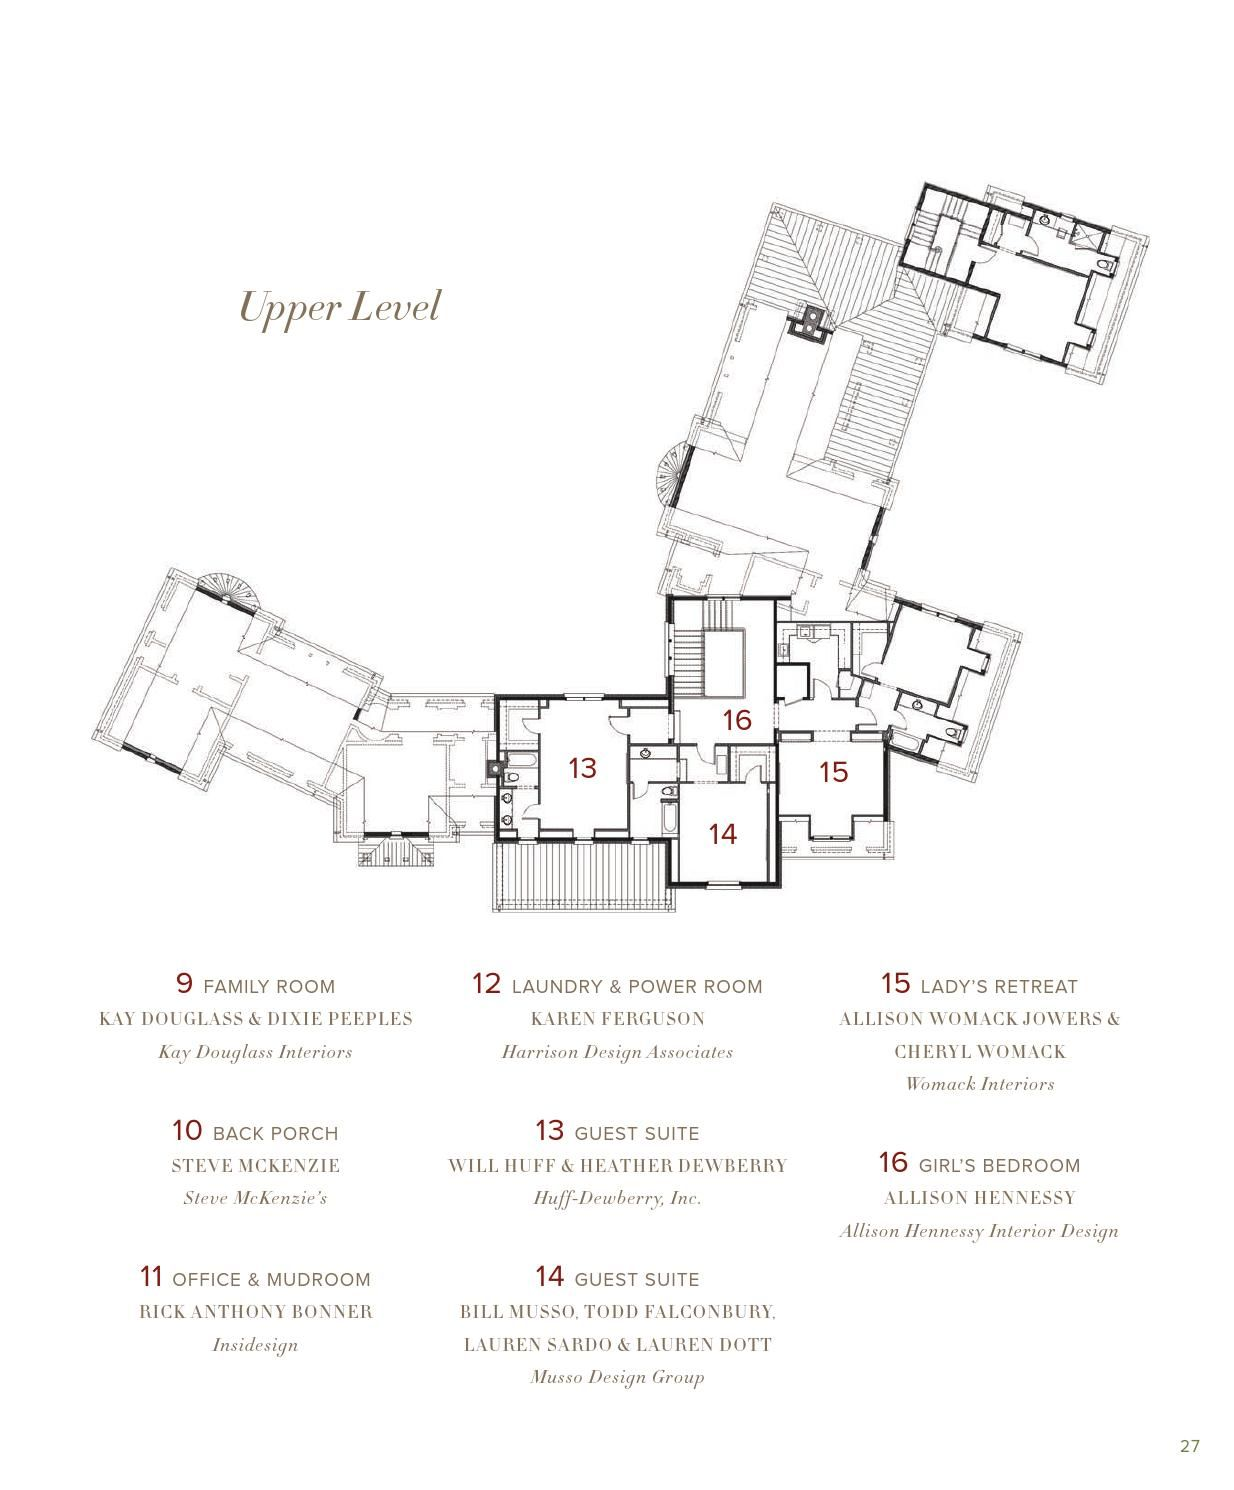 Atlanta Homes Lifestyles November Issue Atlanta Homes House Floor Plans Plan Design